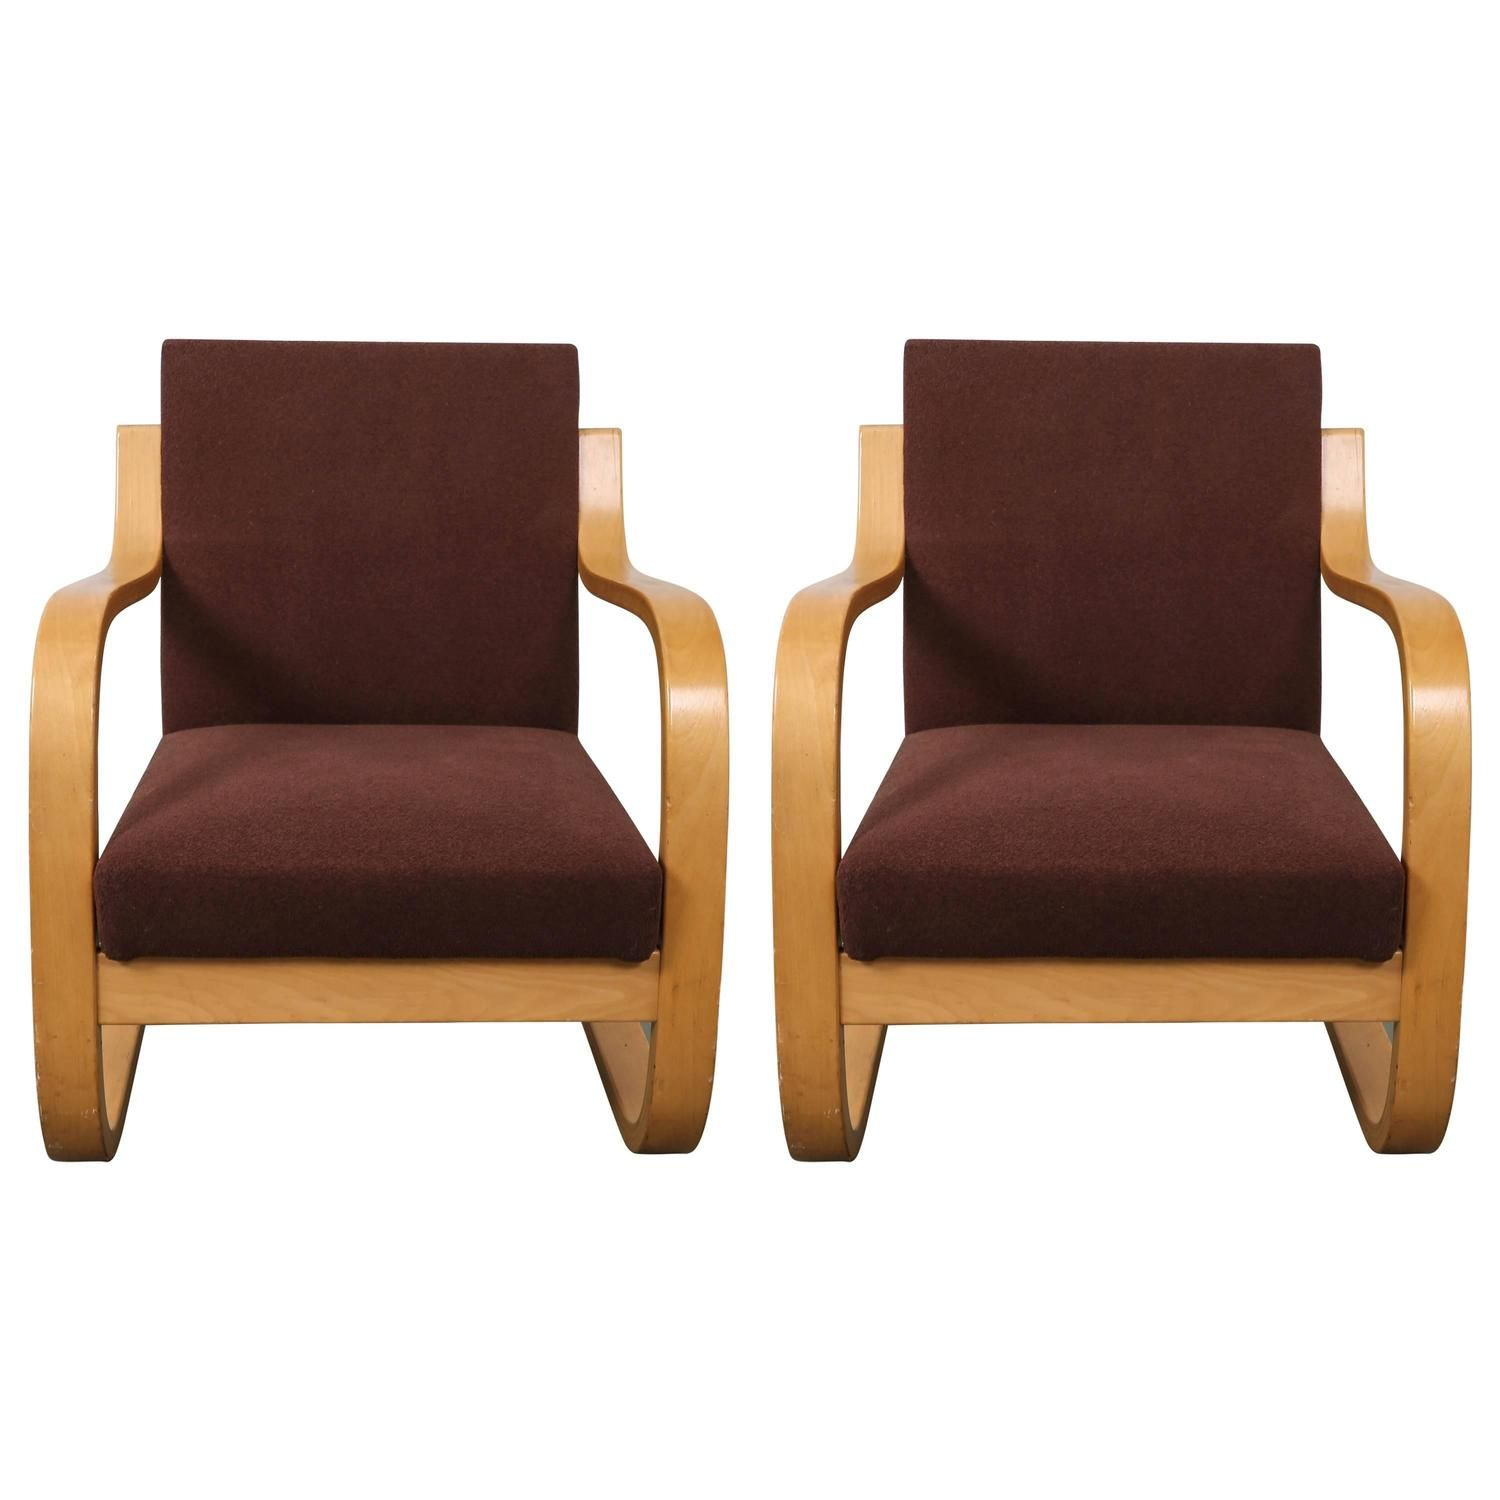 Pair Of 34402 Lounge Chairs By Alvar Aalto